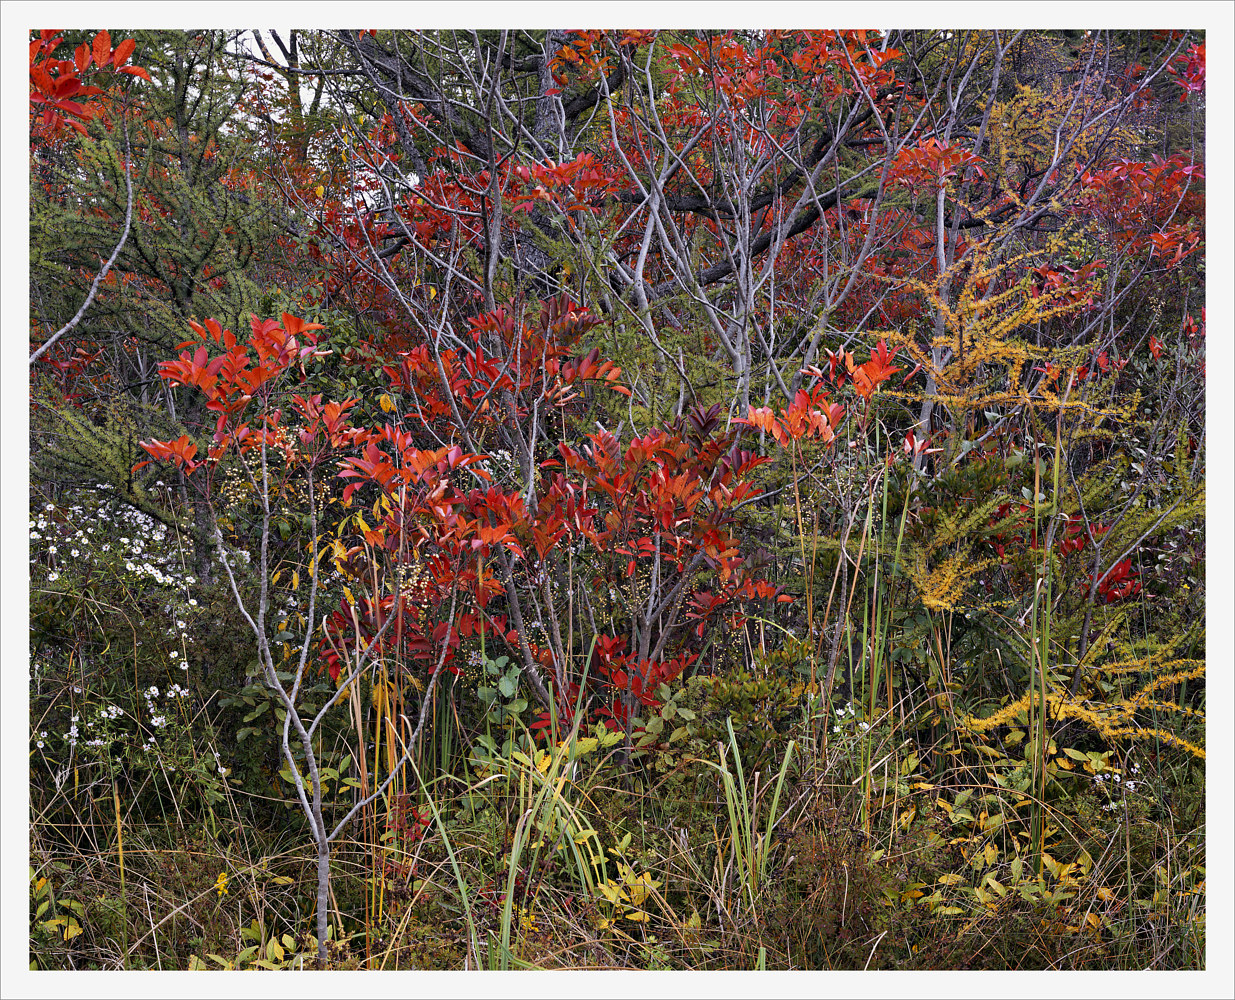 Sumac & Tamarac, Autumn by Wayne Mazorow